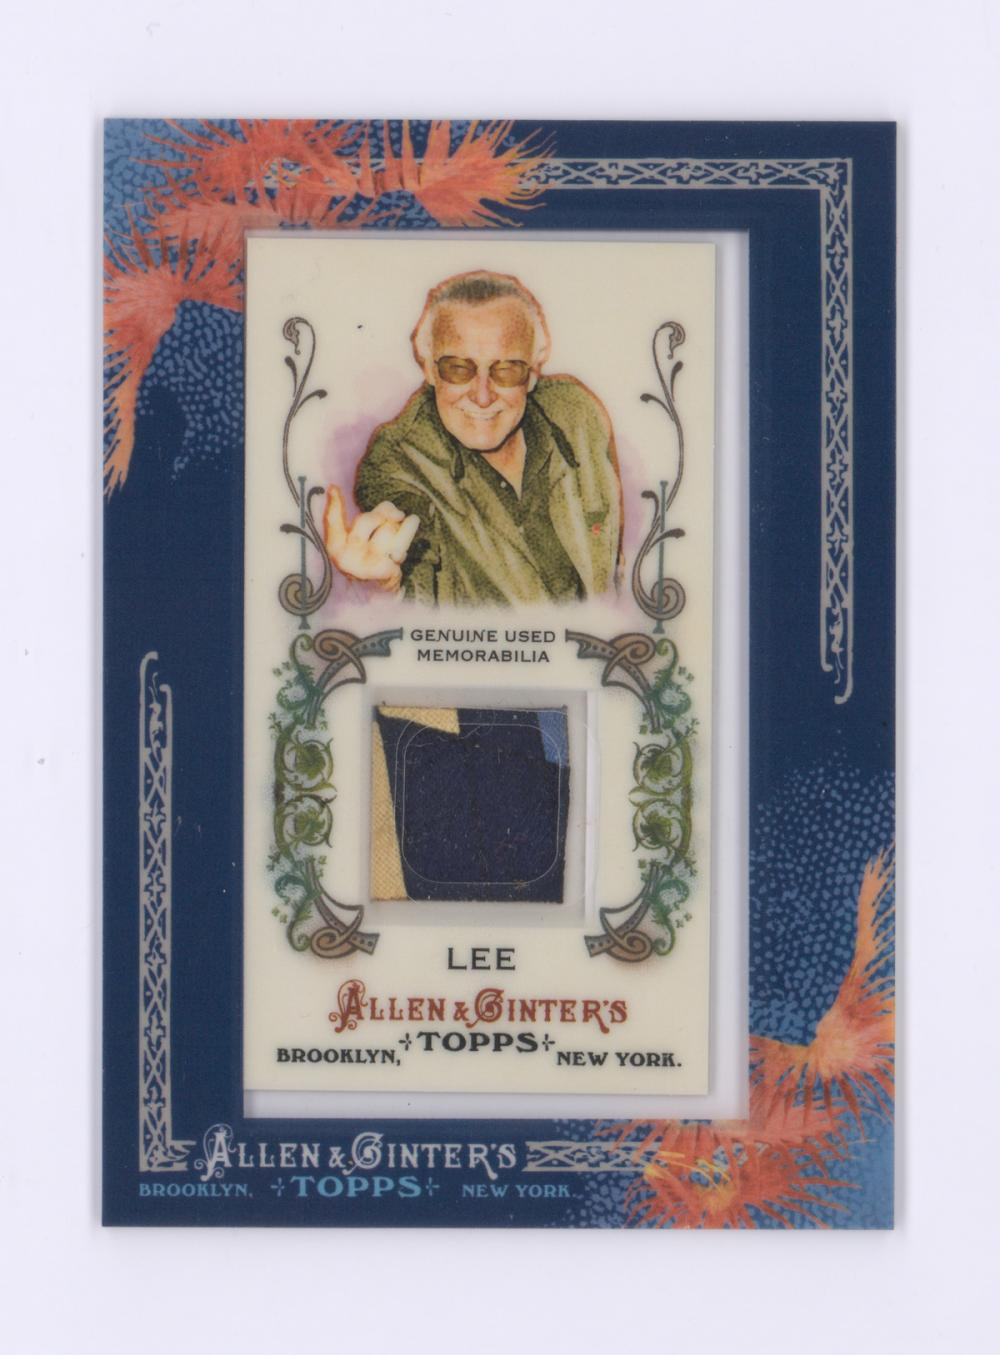 Stan Lee Topps Allen and Ginter Relic Card